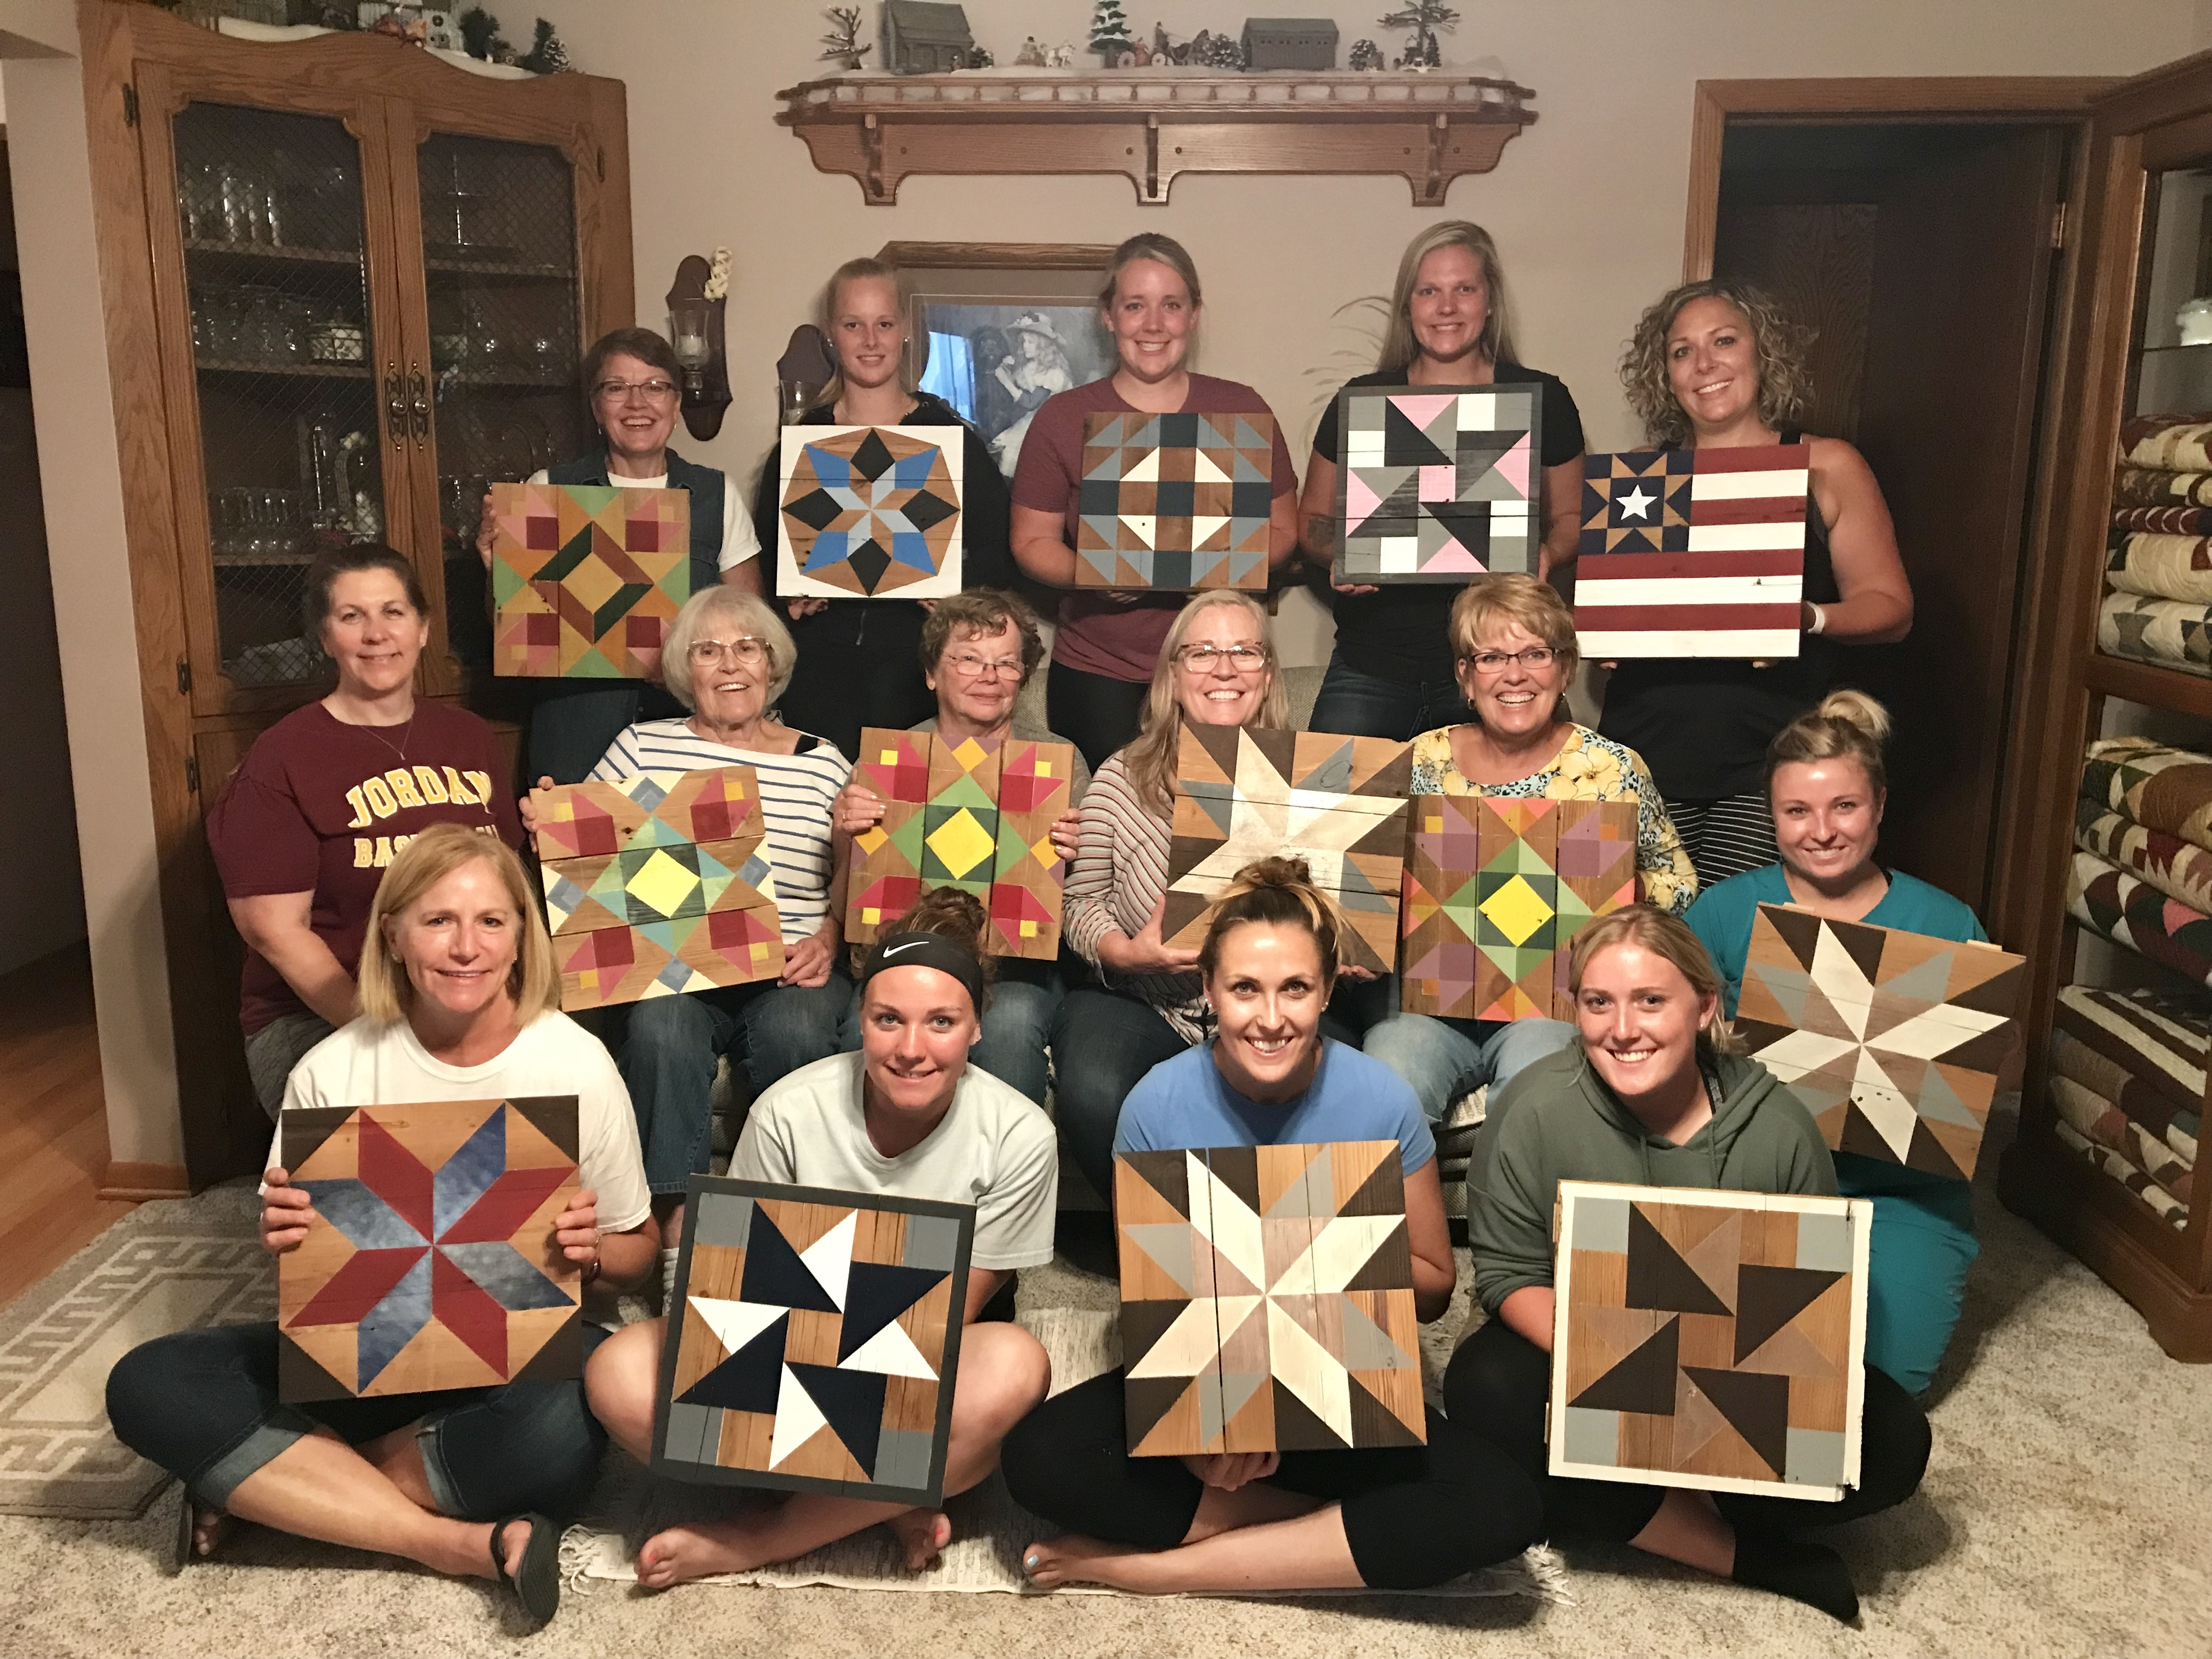 Private Barn Quilt Class